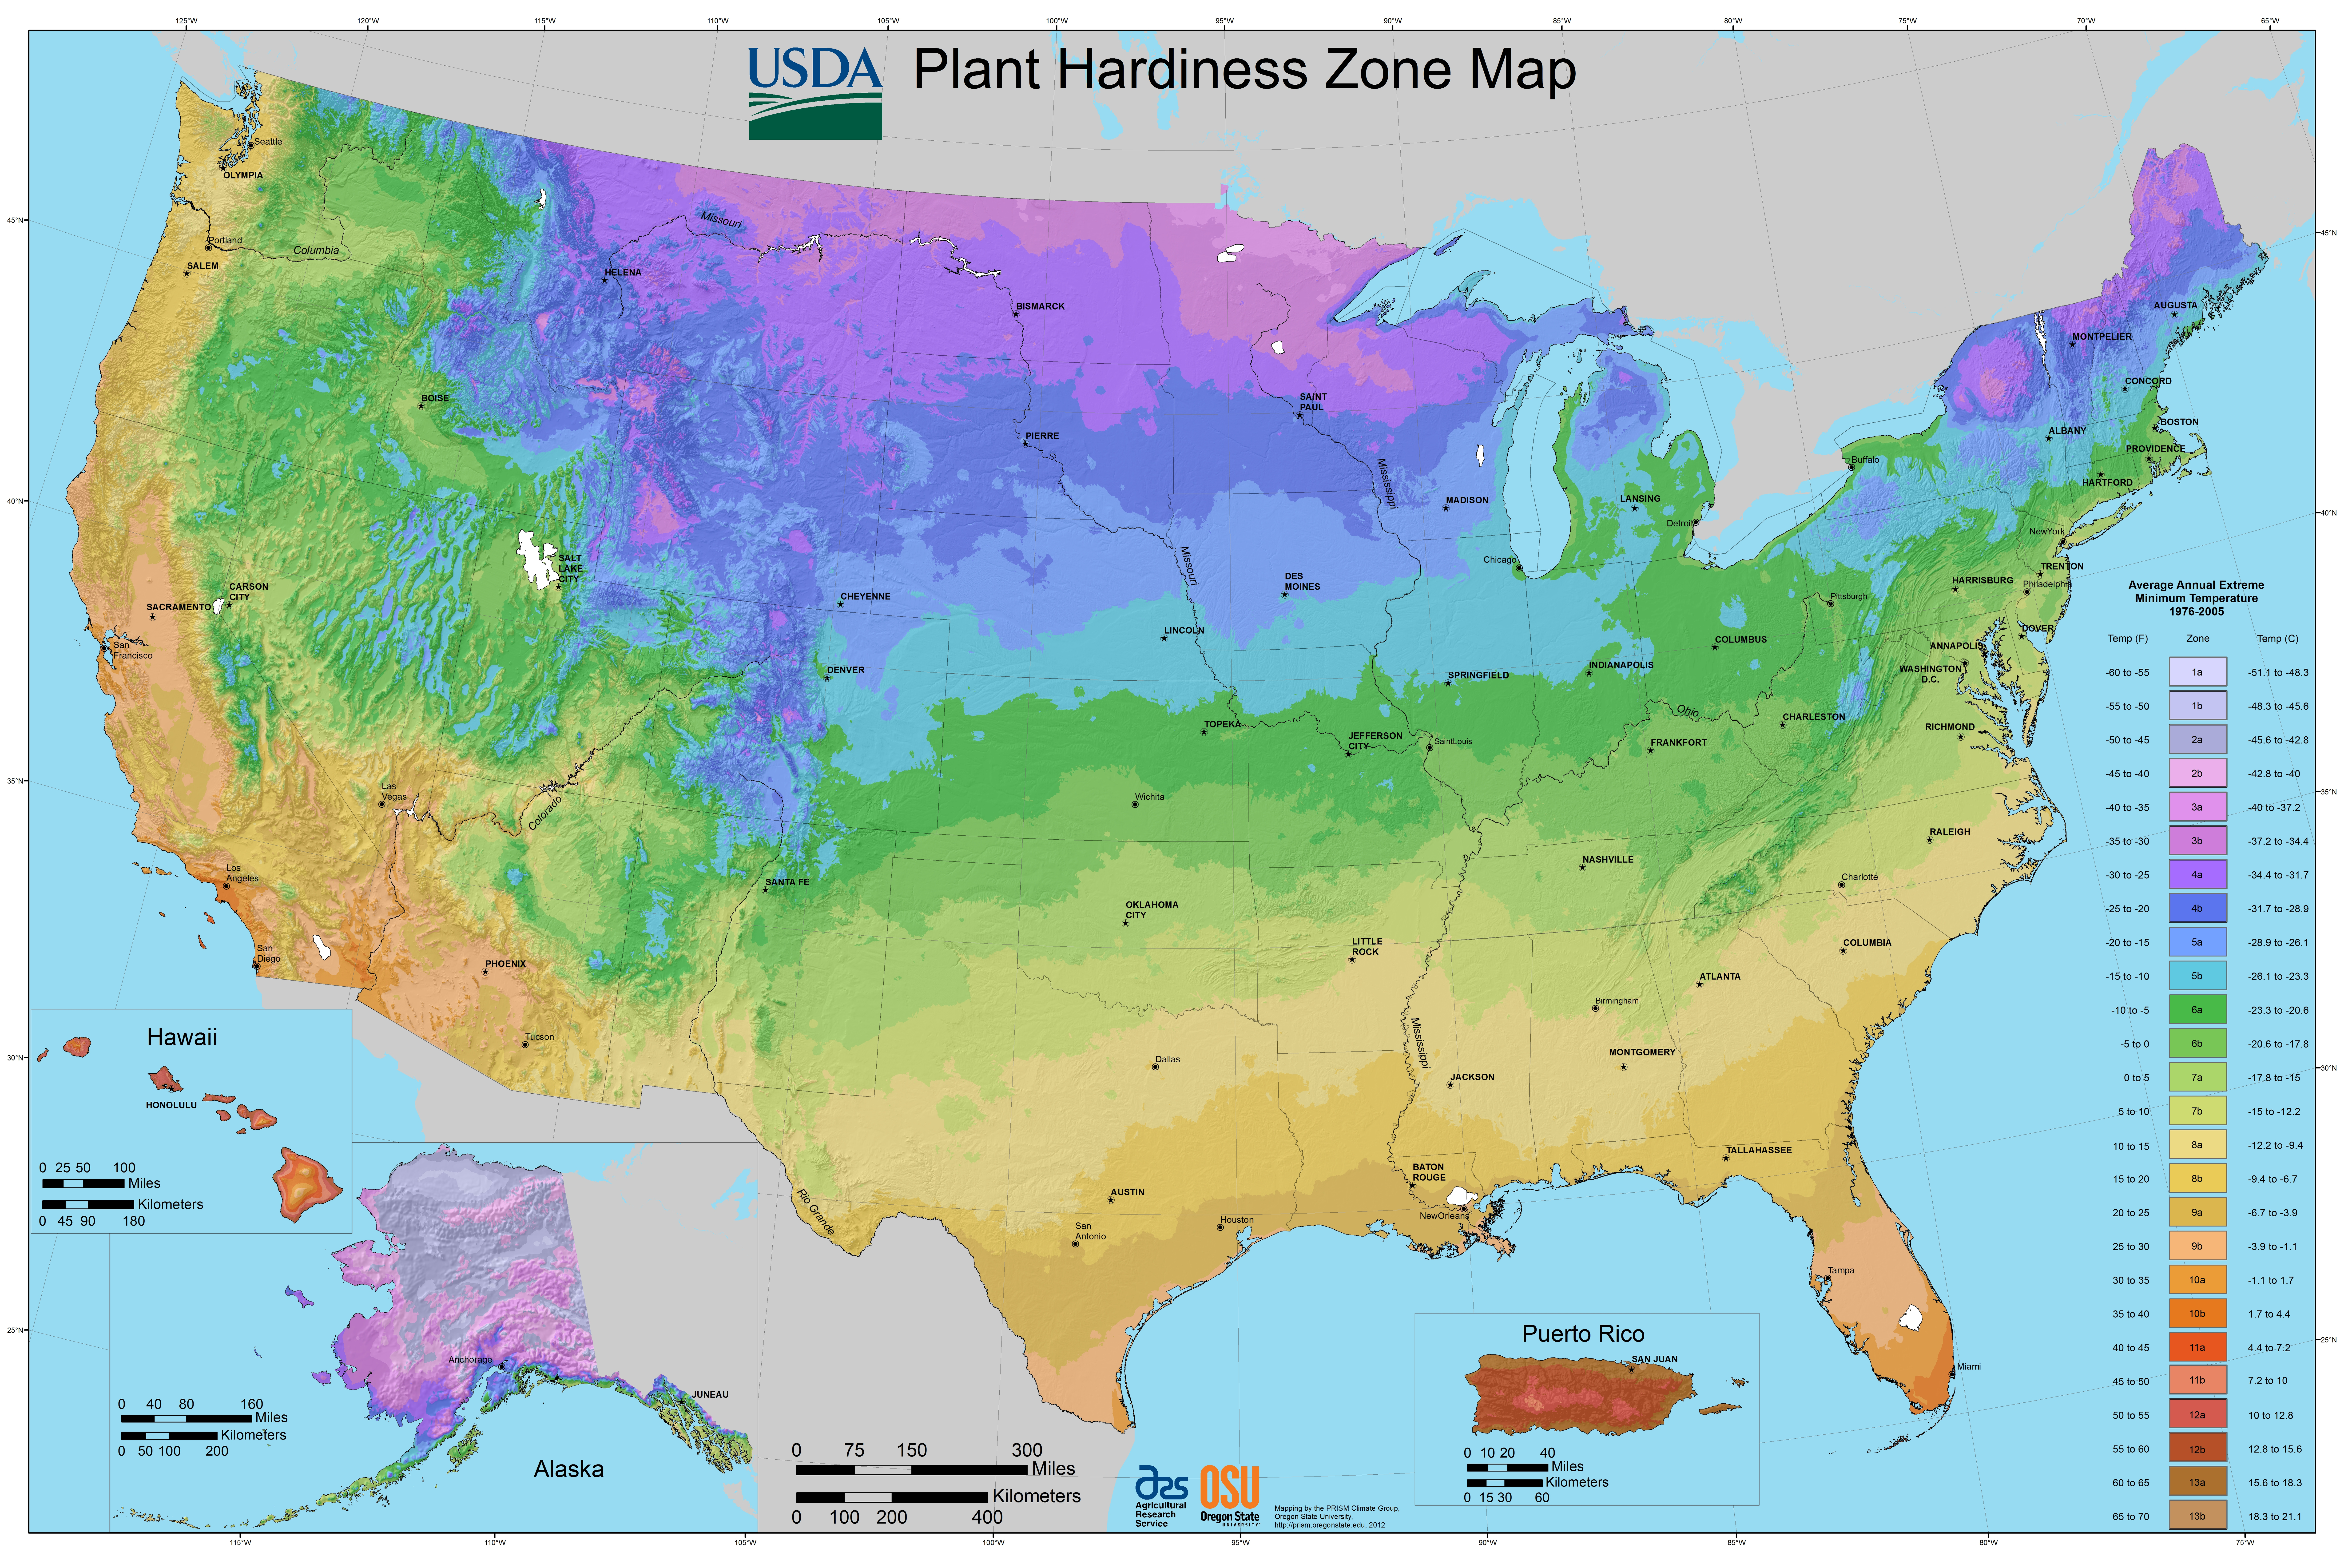 Map Downloads | Usda Plant Hardiness Zone Map - Plant Zone Map Florida